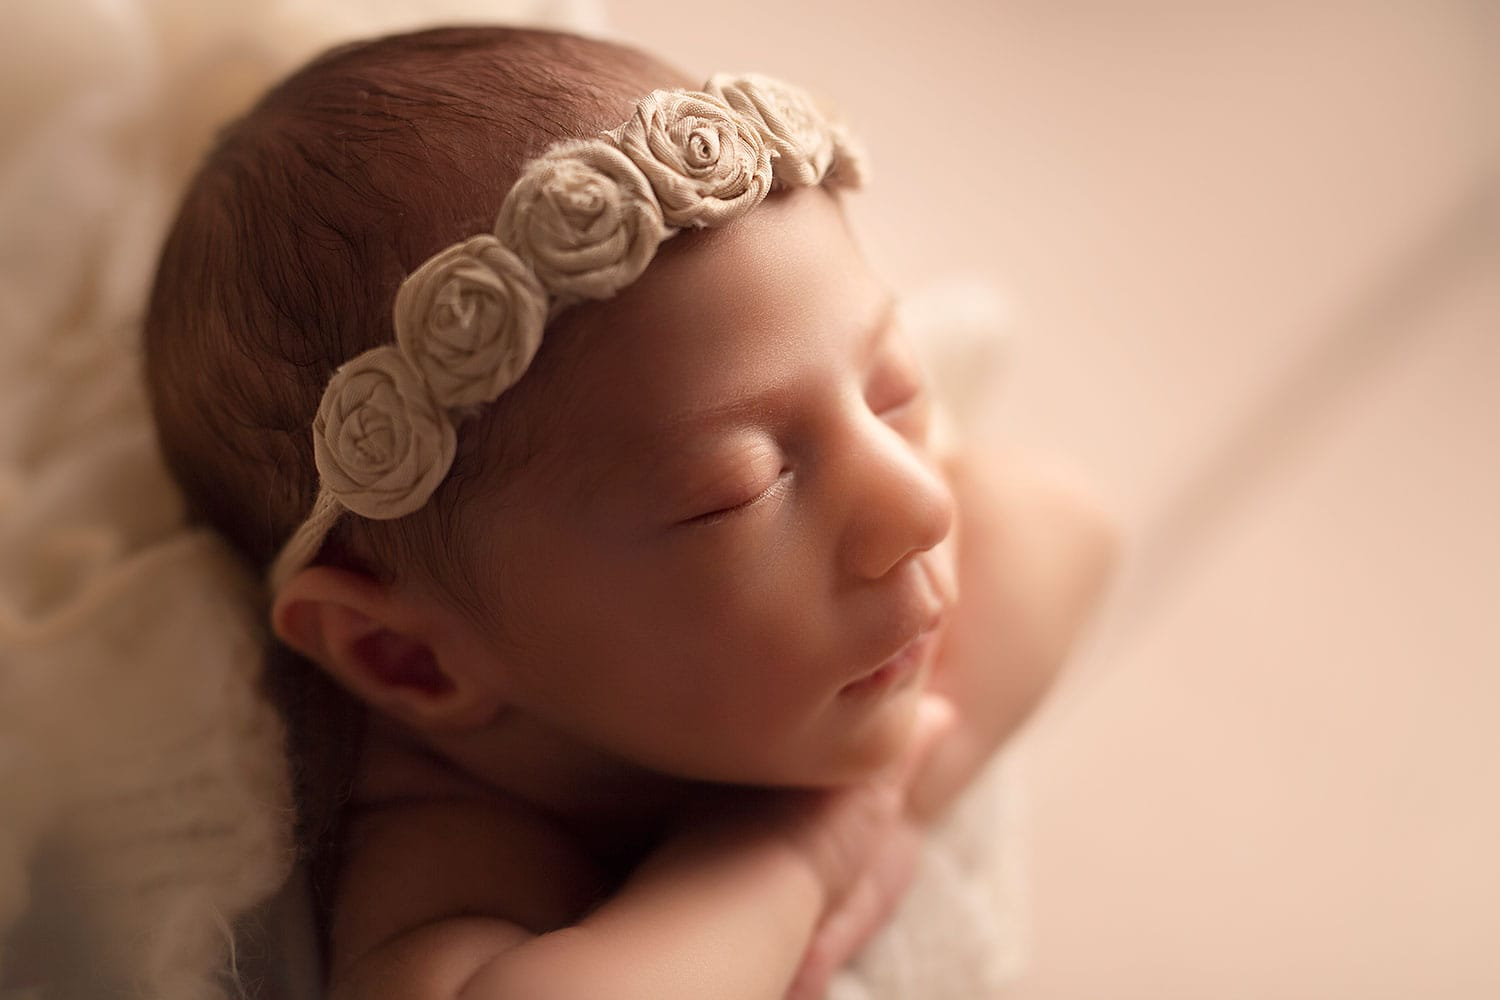 Newborn profile by Annie whitaker Photography